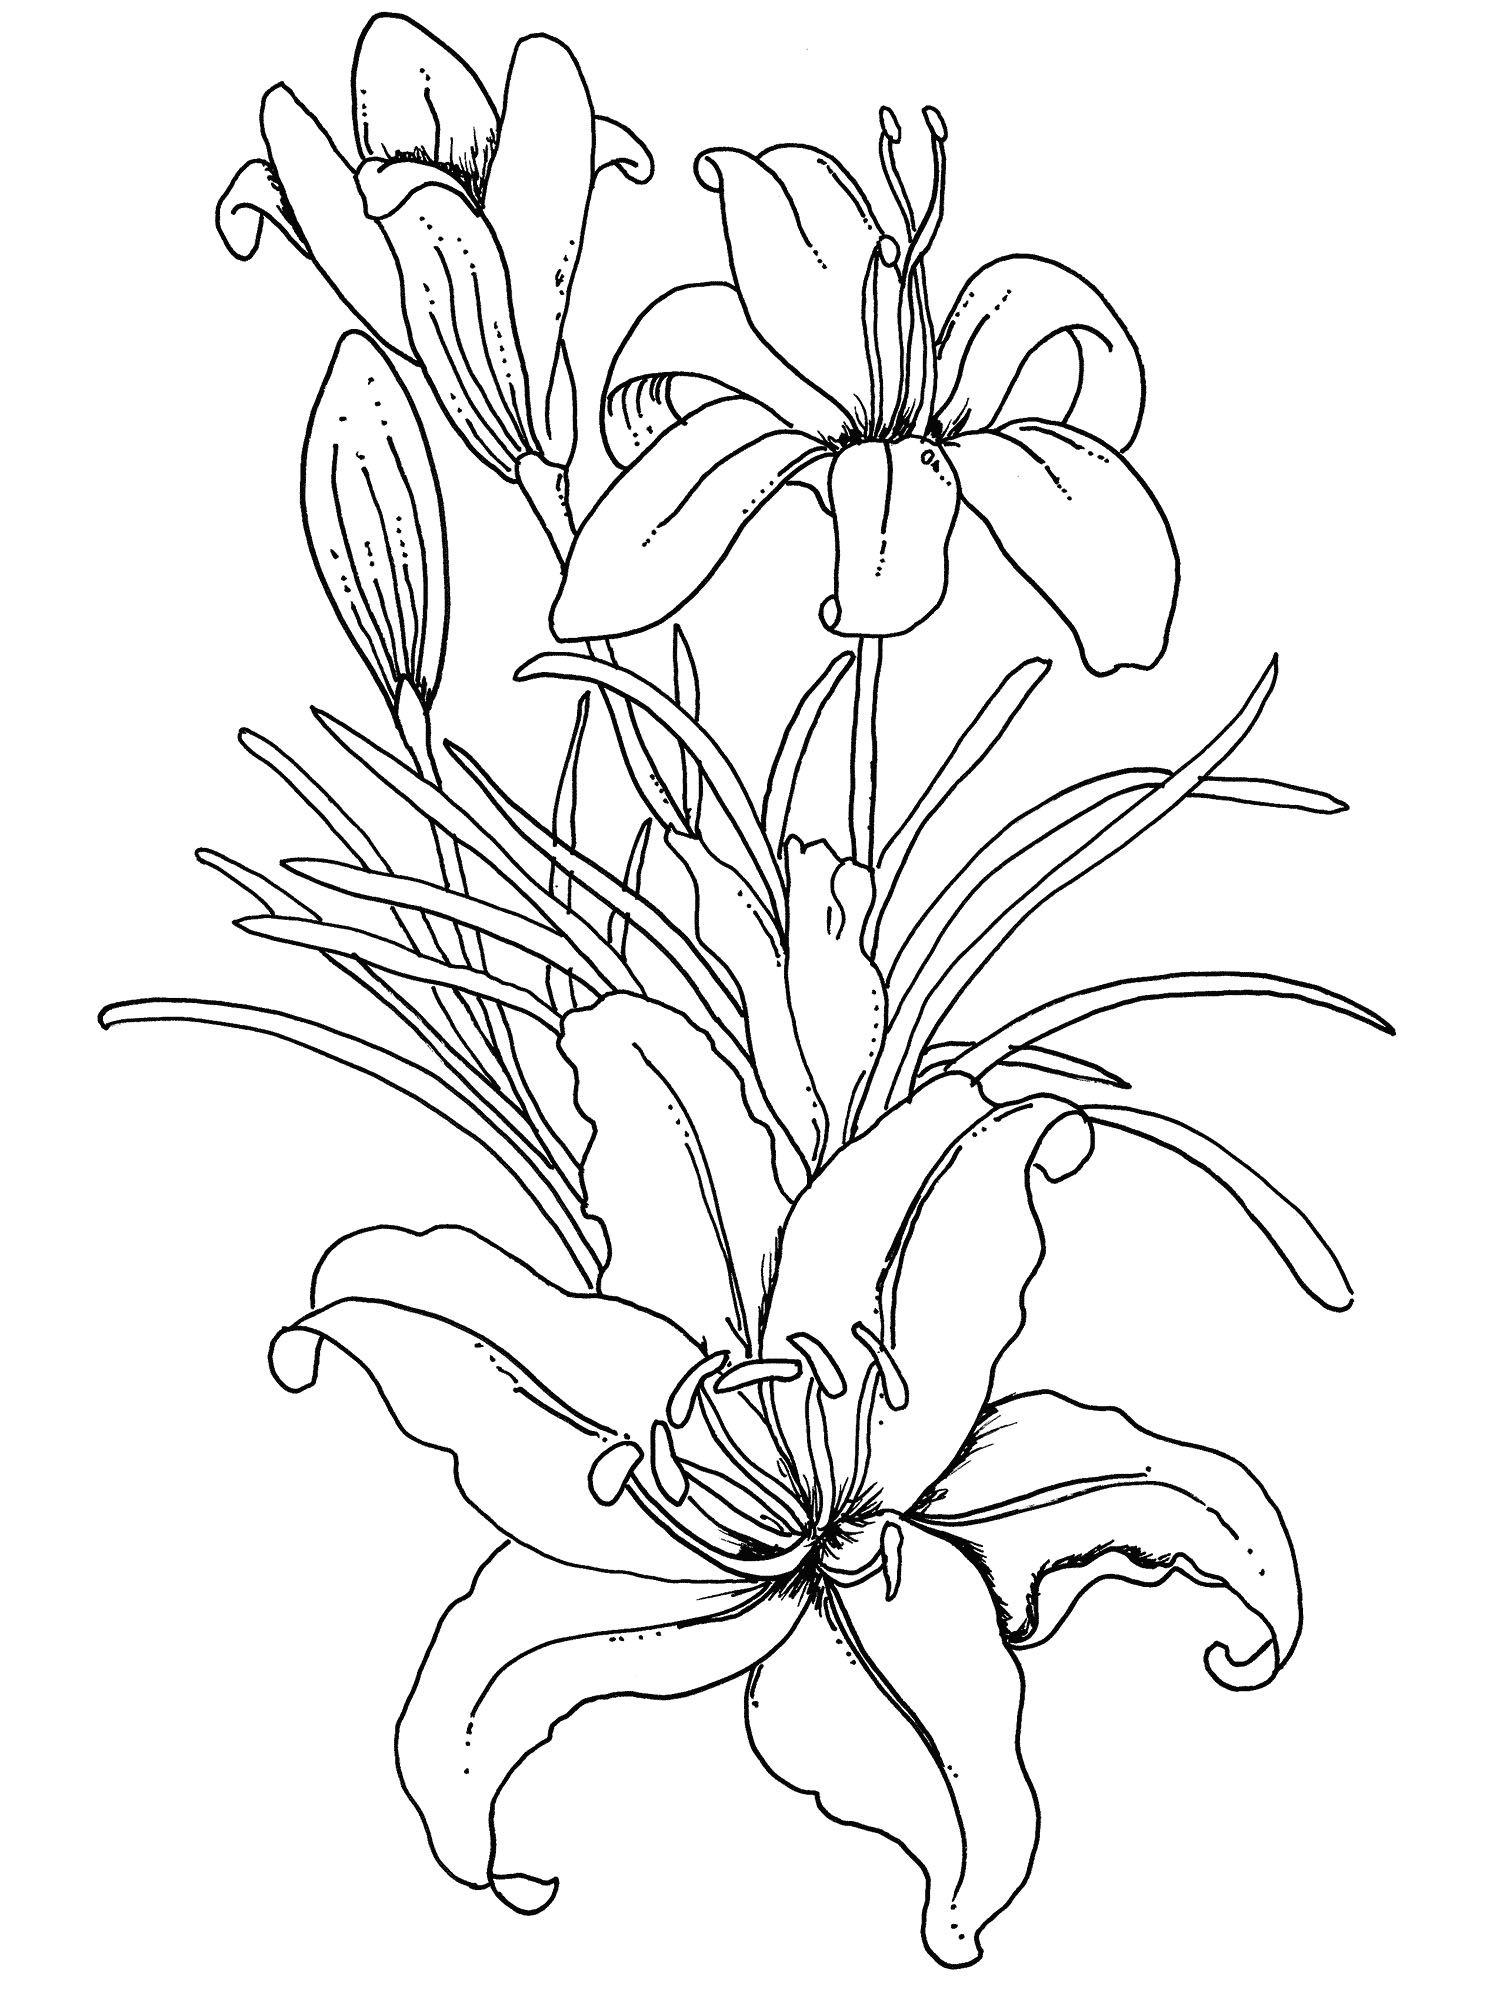 pin by mon on patterns flower coloring pages adult coloring pages rh pinterest com